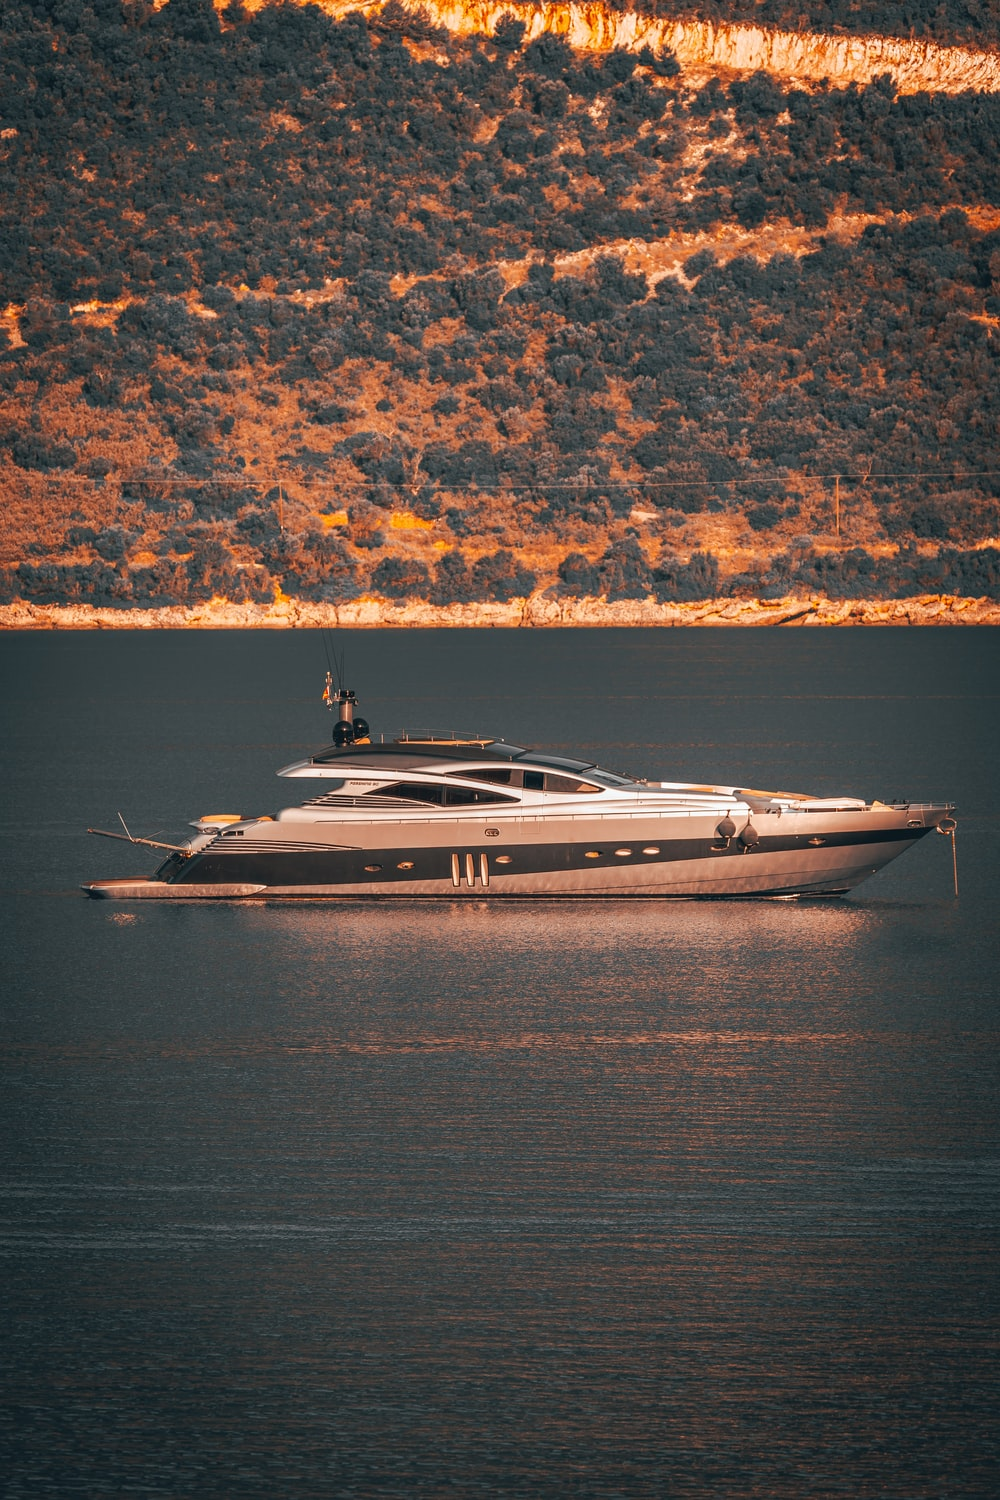 500 yacht pictures download free images on unsplash